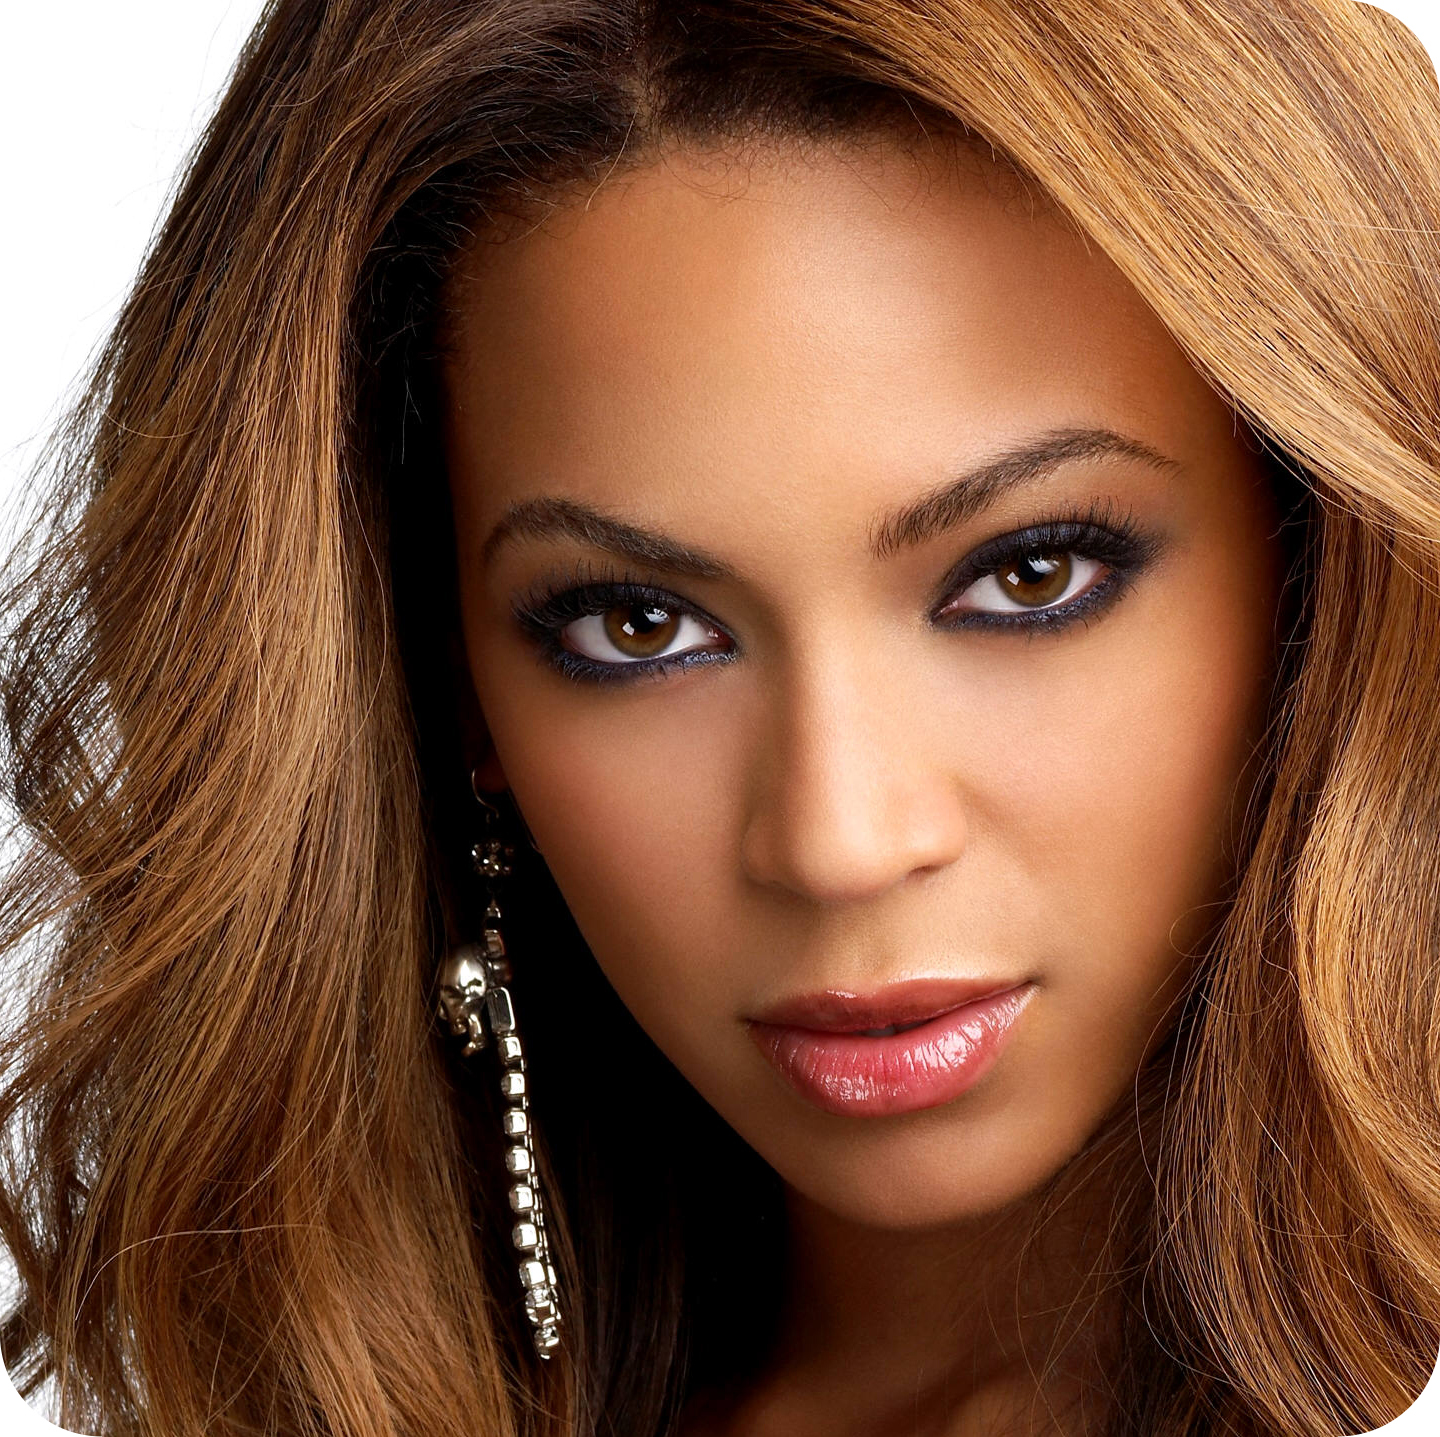 Musicliving Beyonce If I Were A Boy